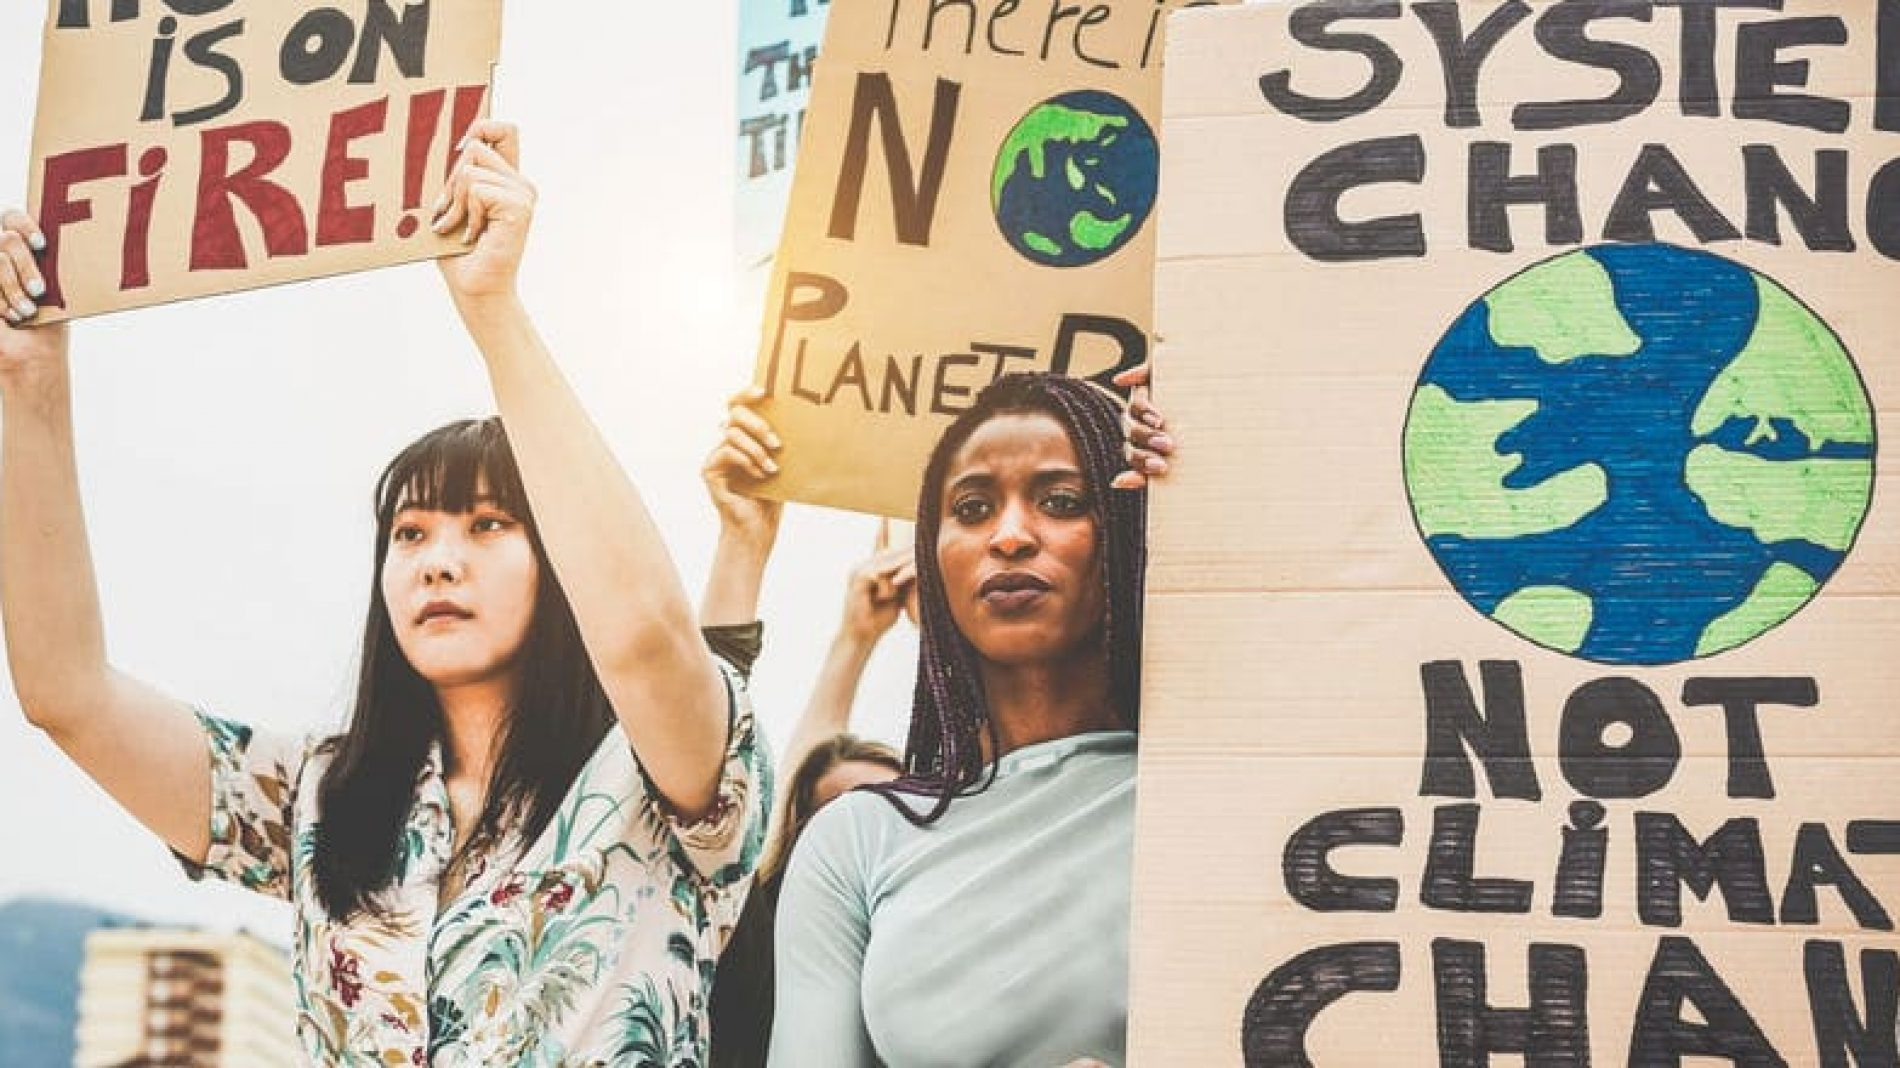 Find your nearest climate strike for this Friday